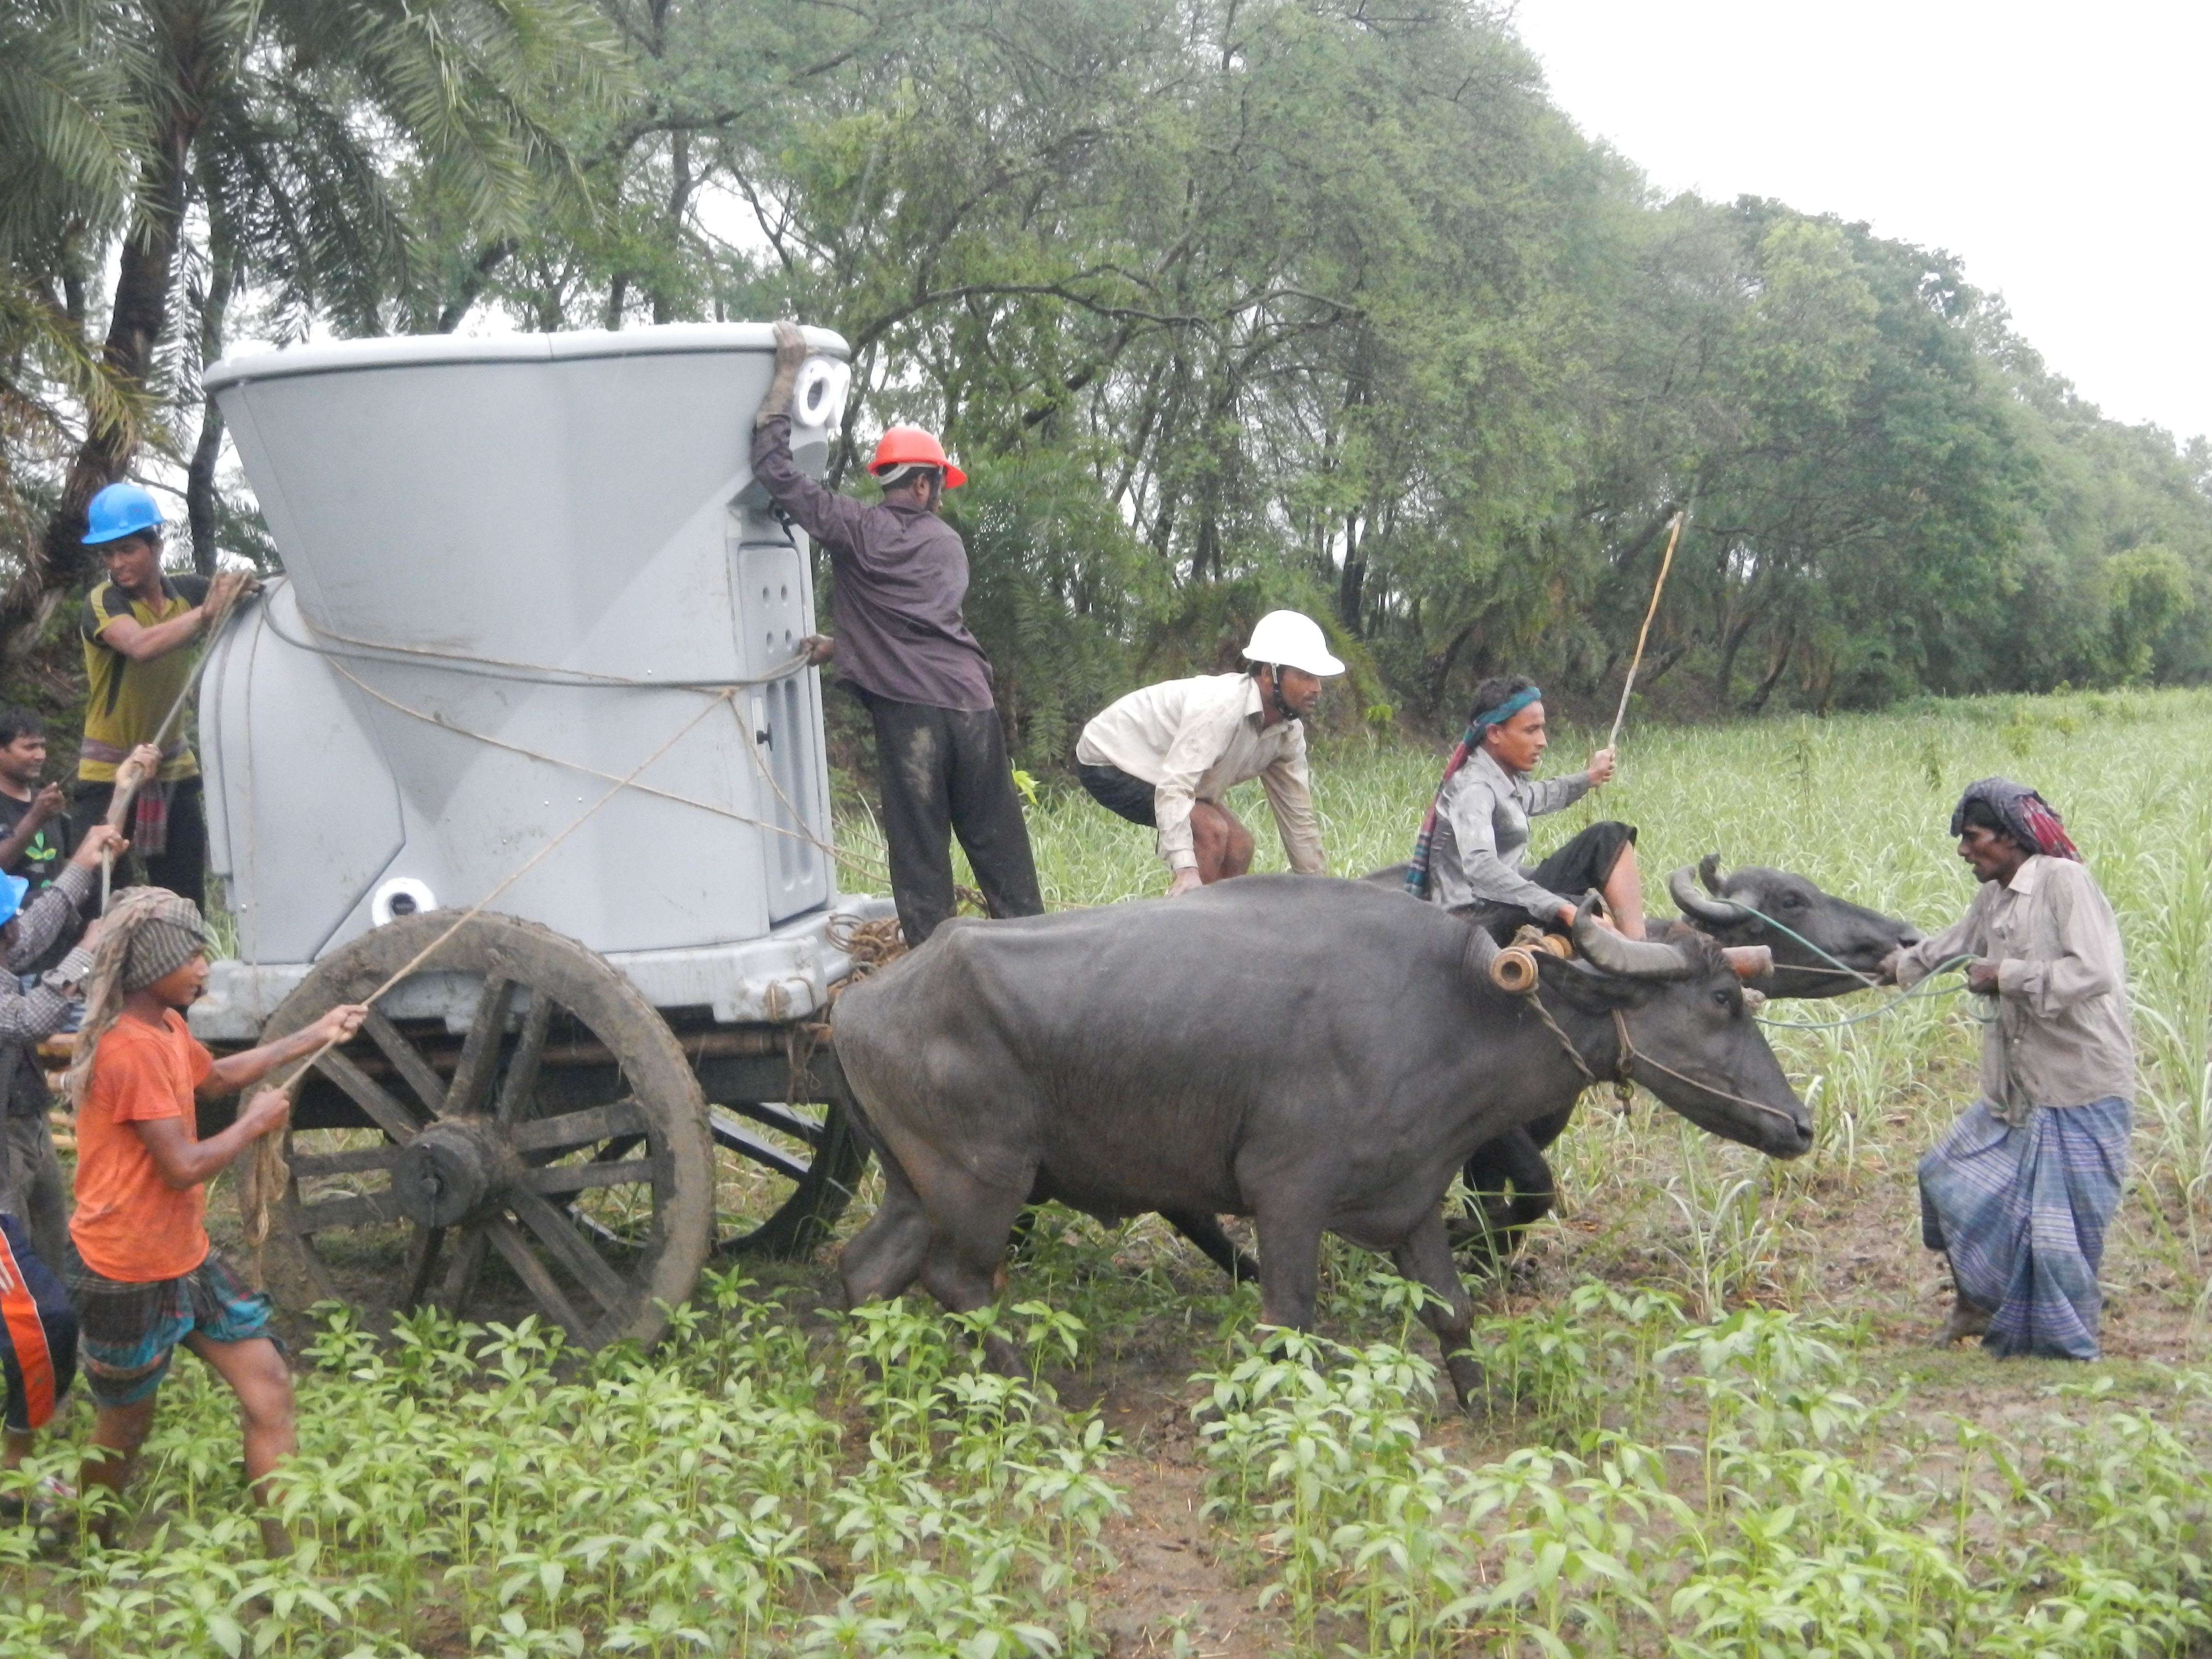 A group of people and water buffaloes transport a large meteorological instrument in a rice paddy.